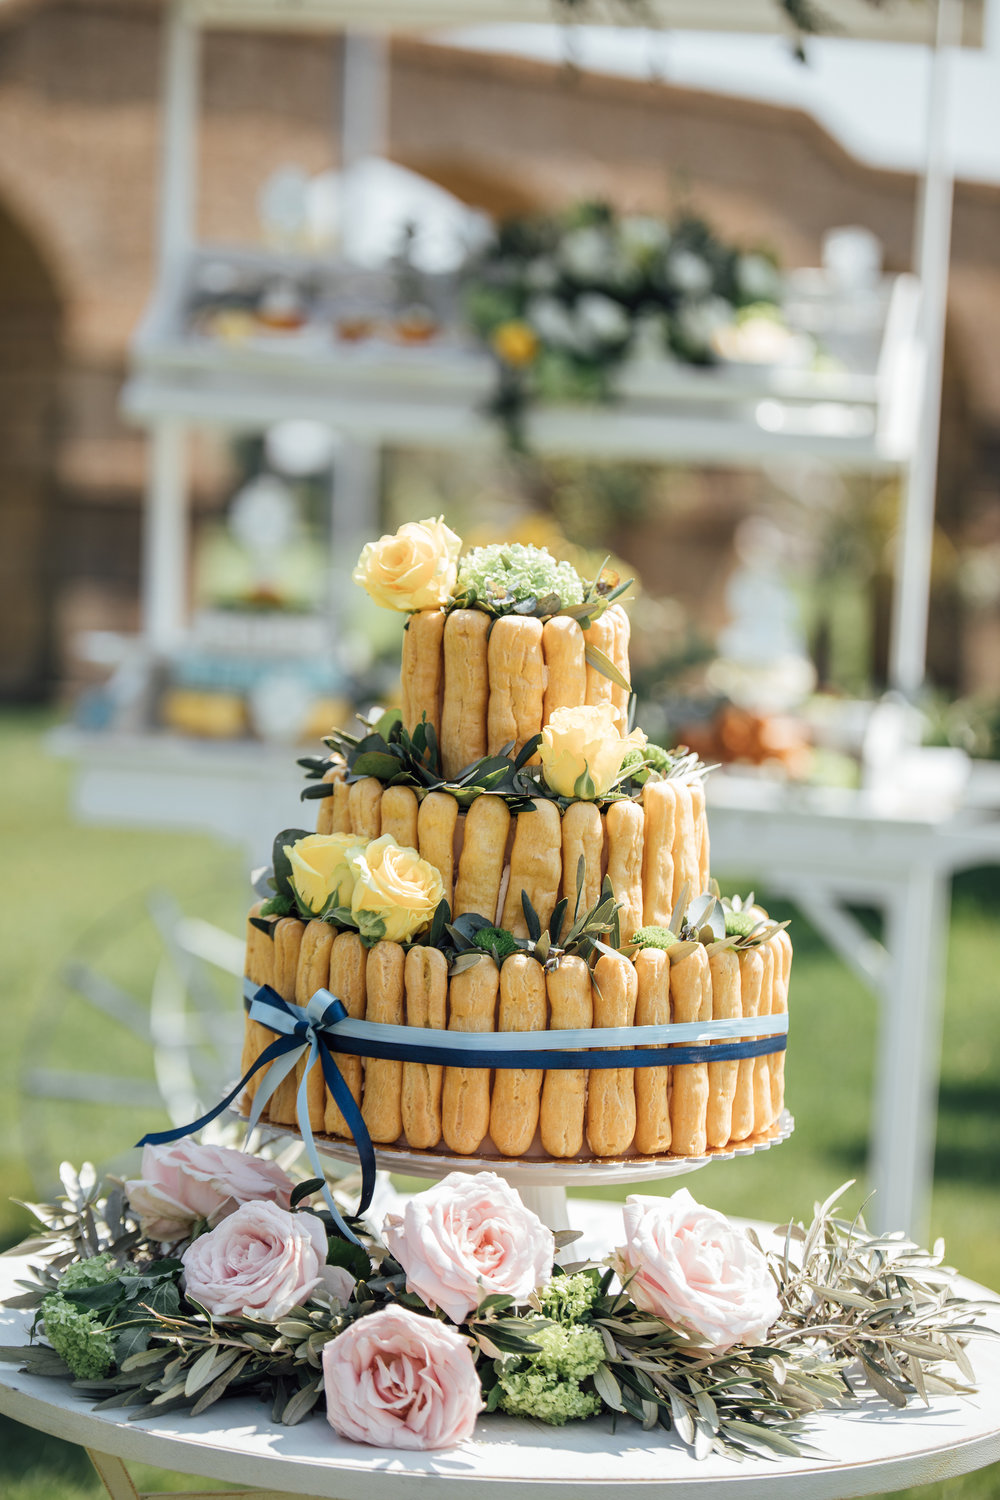 Tiered Lady Finger Wedding Cake with fresh flowers from a Garden Wedding Styled Shoot in Rome Italy - by Jess Palatucci Photography - as seen on www.BrendasWeddingBlog.com